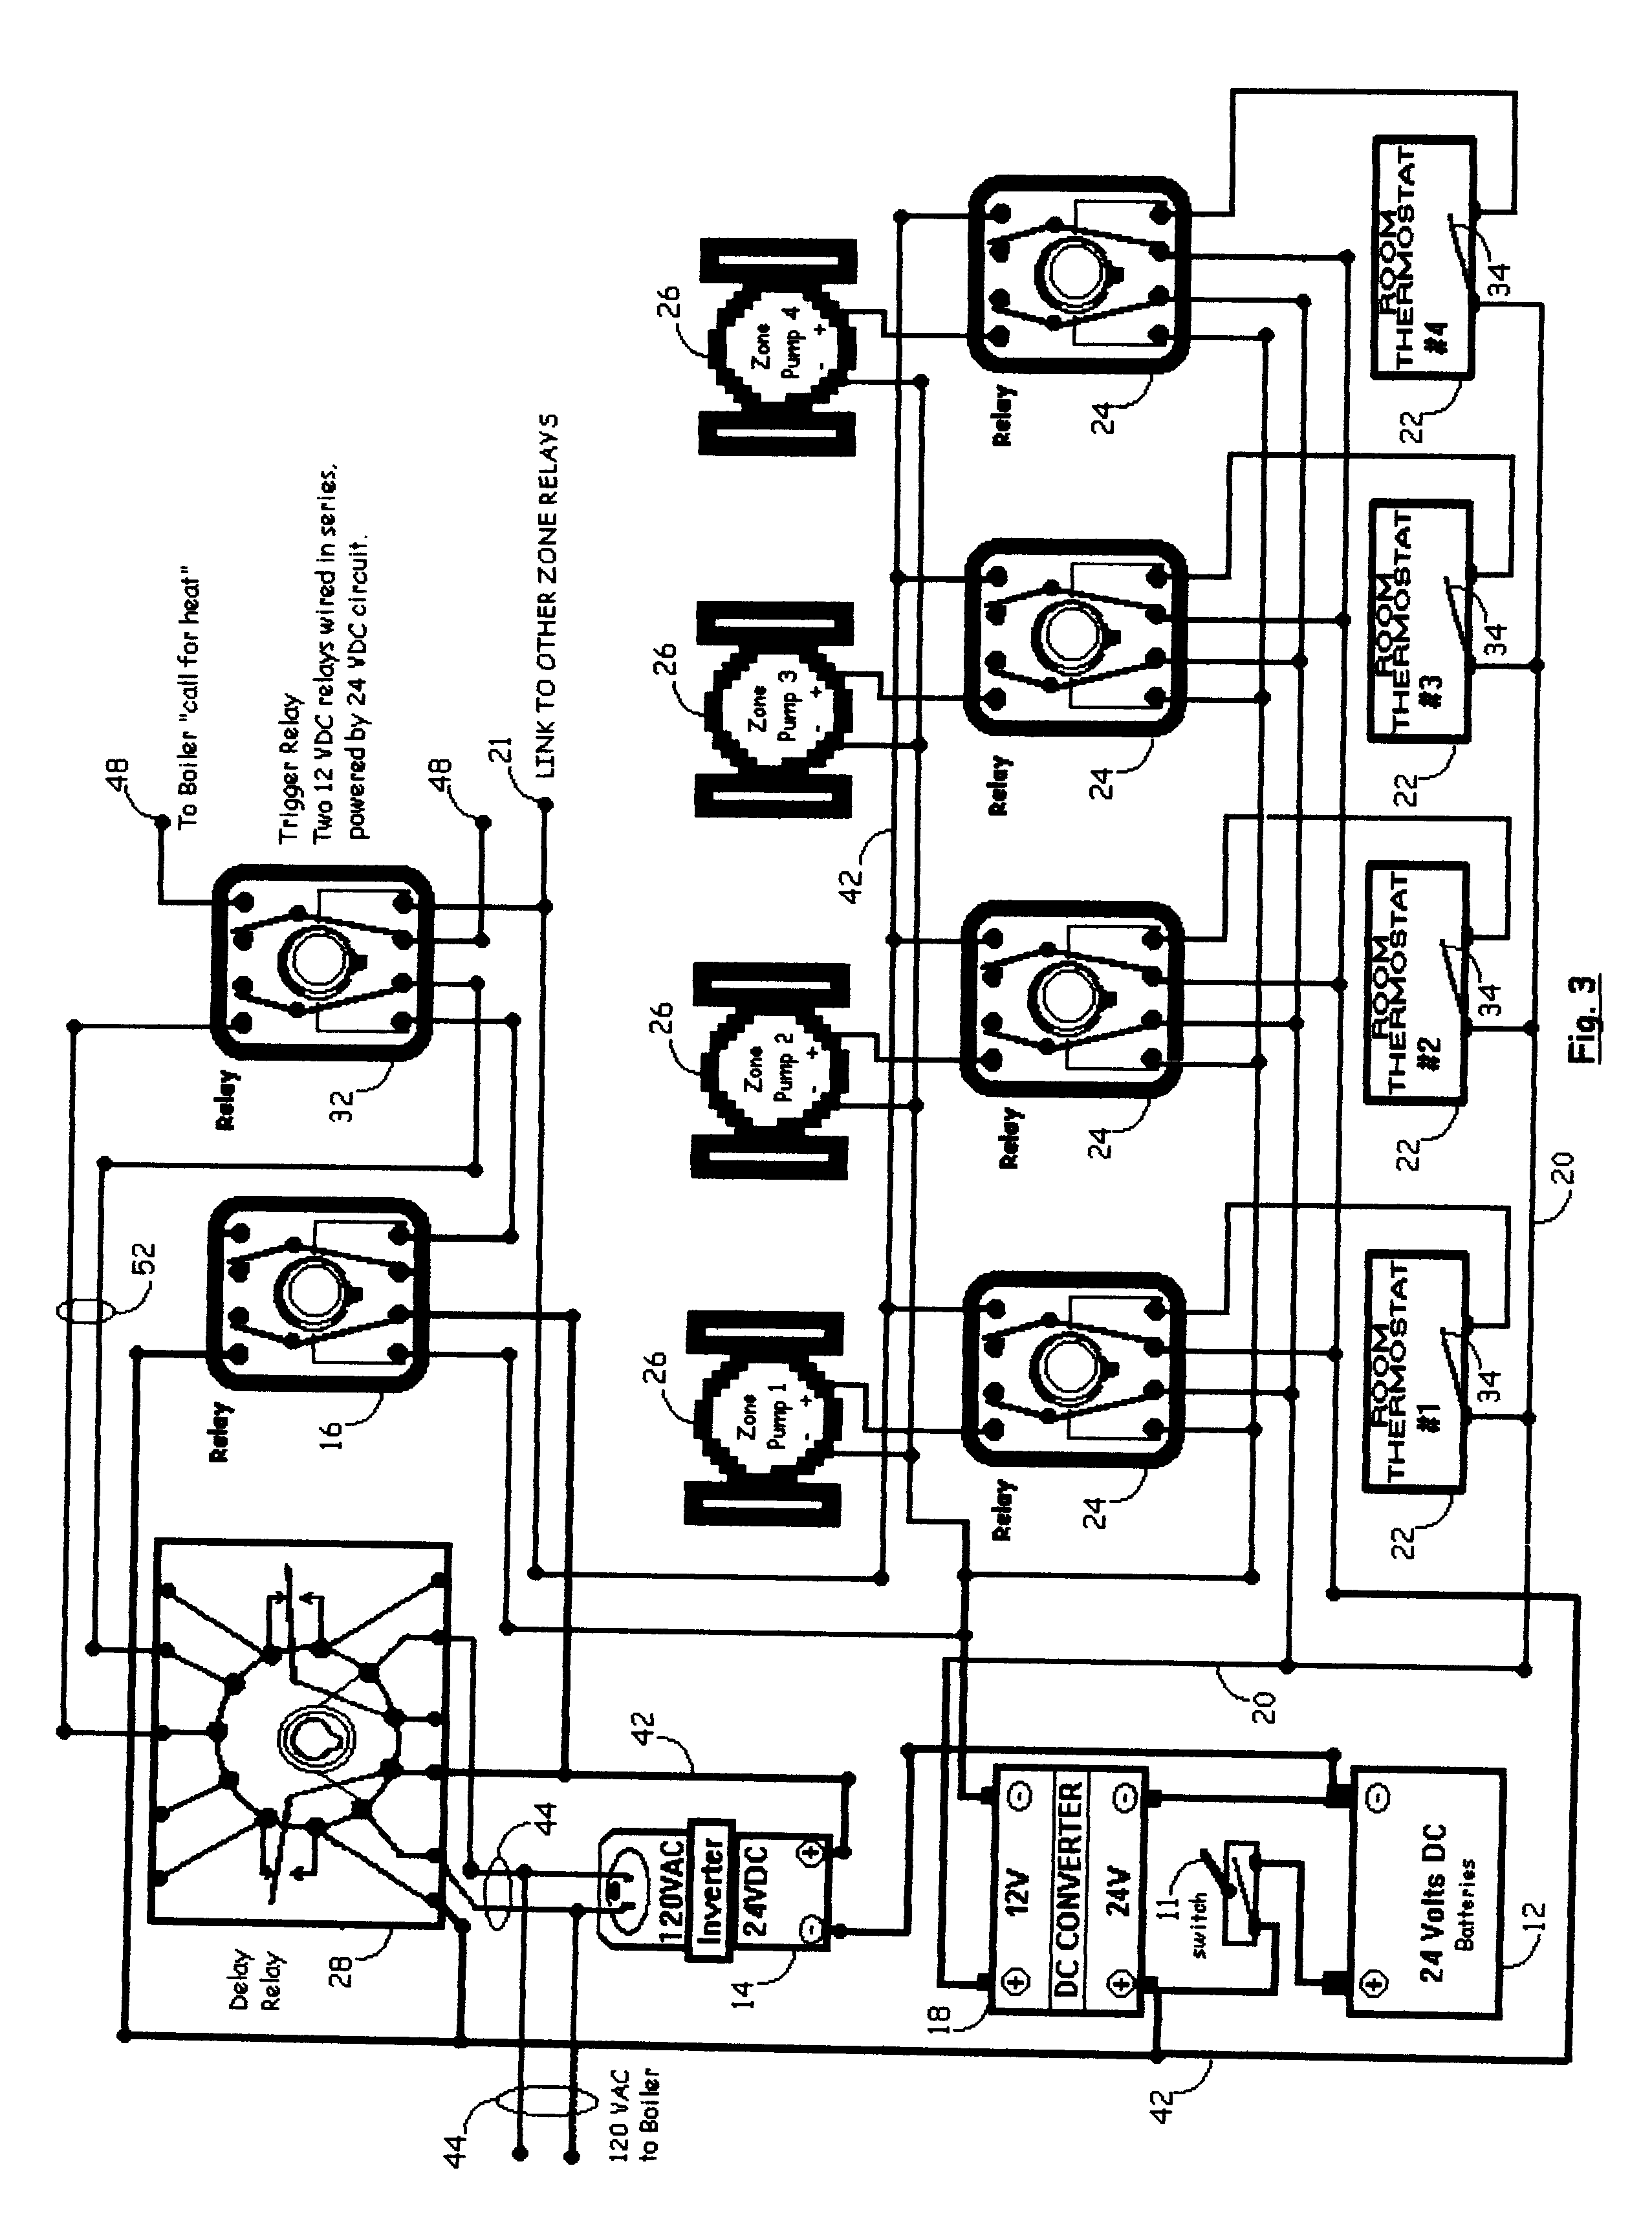 patent us6237855 direct current electrical controls for heating Malibu Lighting Transformer Wiring Diagram patent drawing